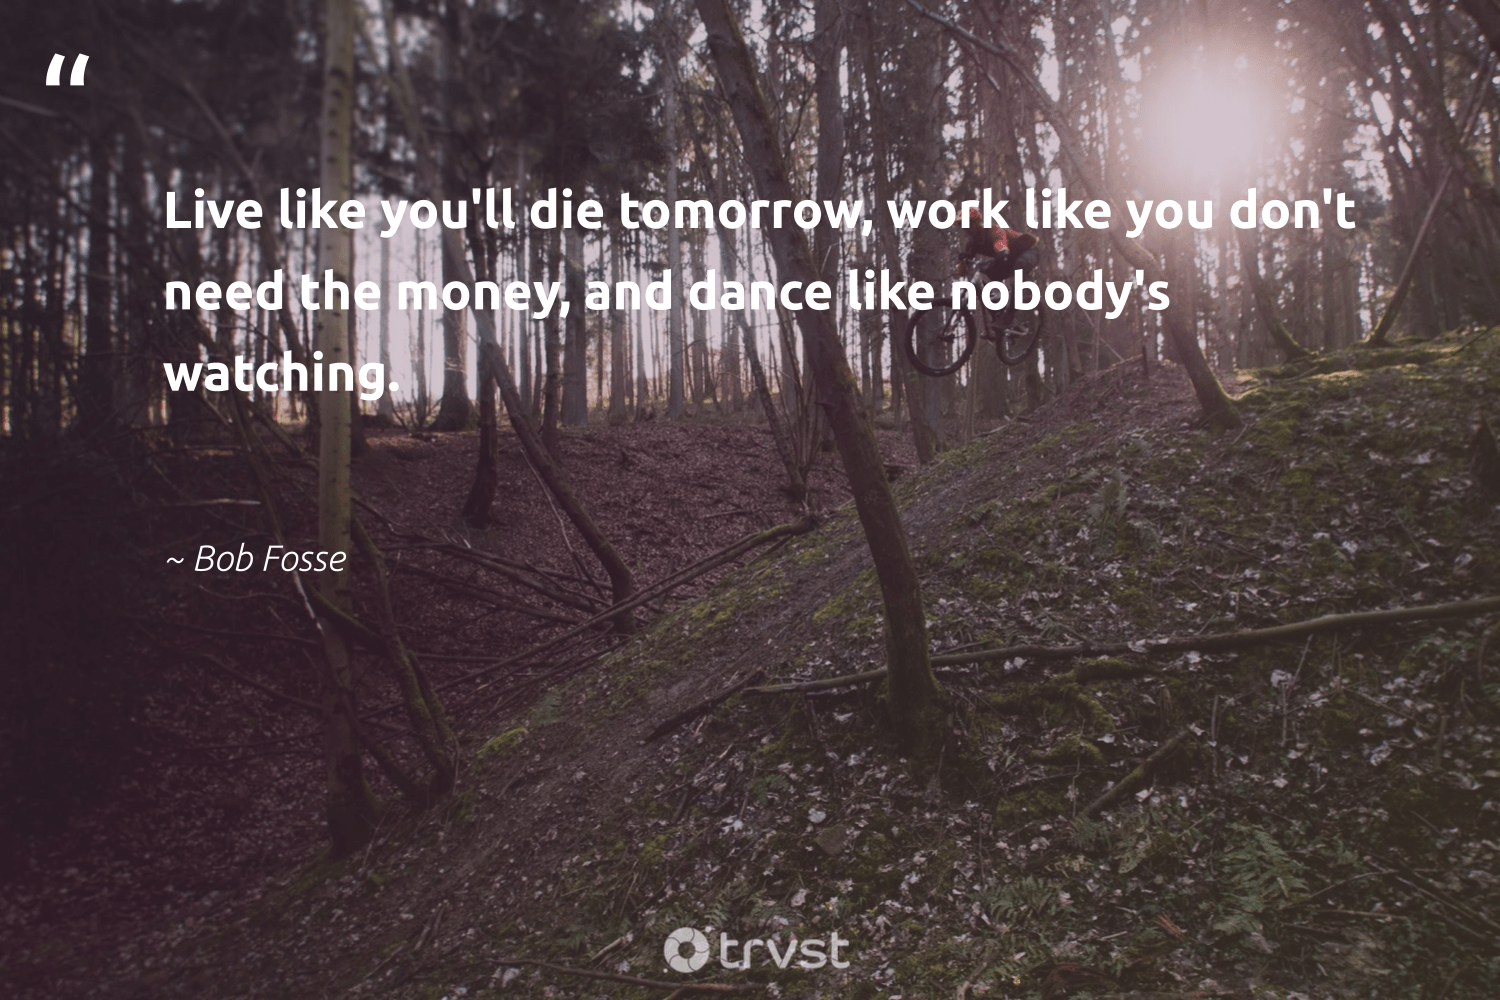 """Live like you'll die tomorrow, work like you don't need the money, and dance like nobody's watching.""  - Bob Fosse #trvst #quotes #softskills #socialimpact #futureofwork #bethechange #begreat #thinkgreen #nevergiveup #socialchange #beinspired #ecoconscious"